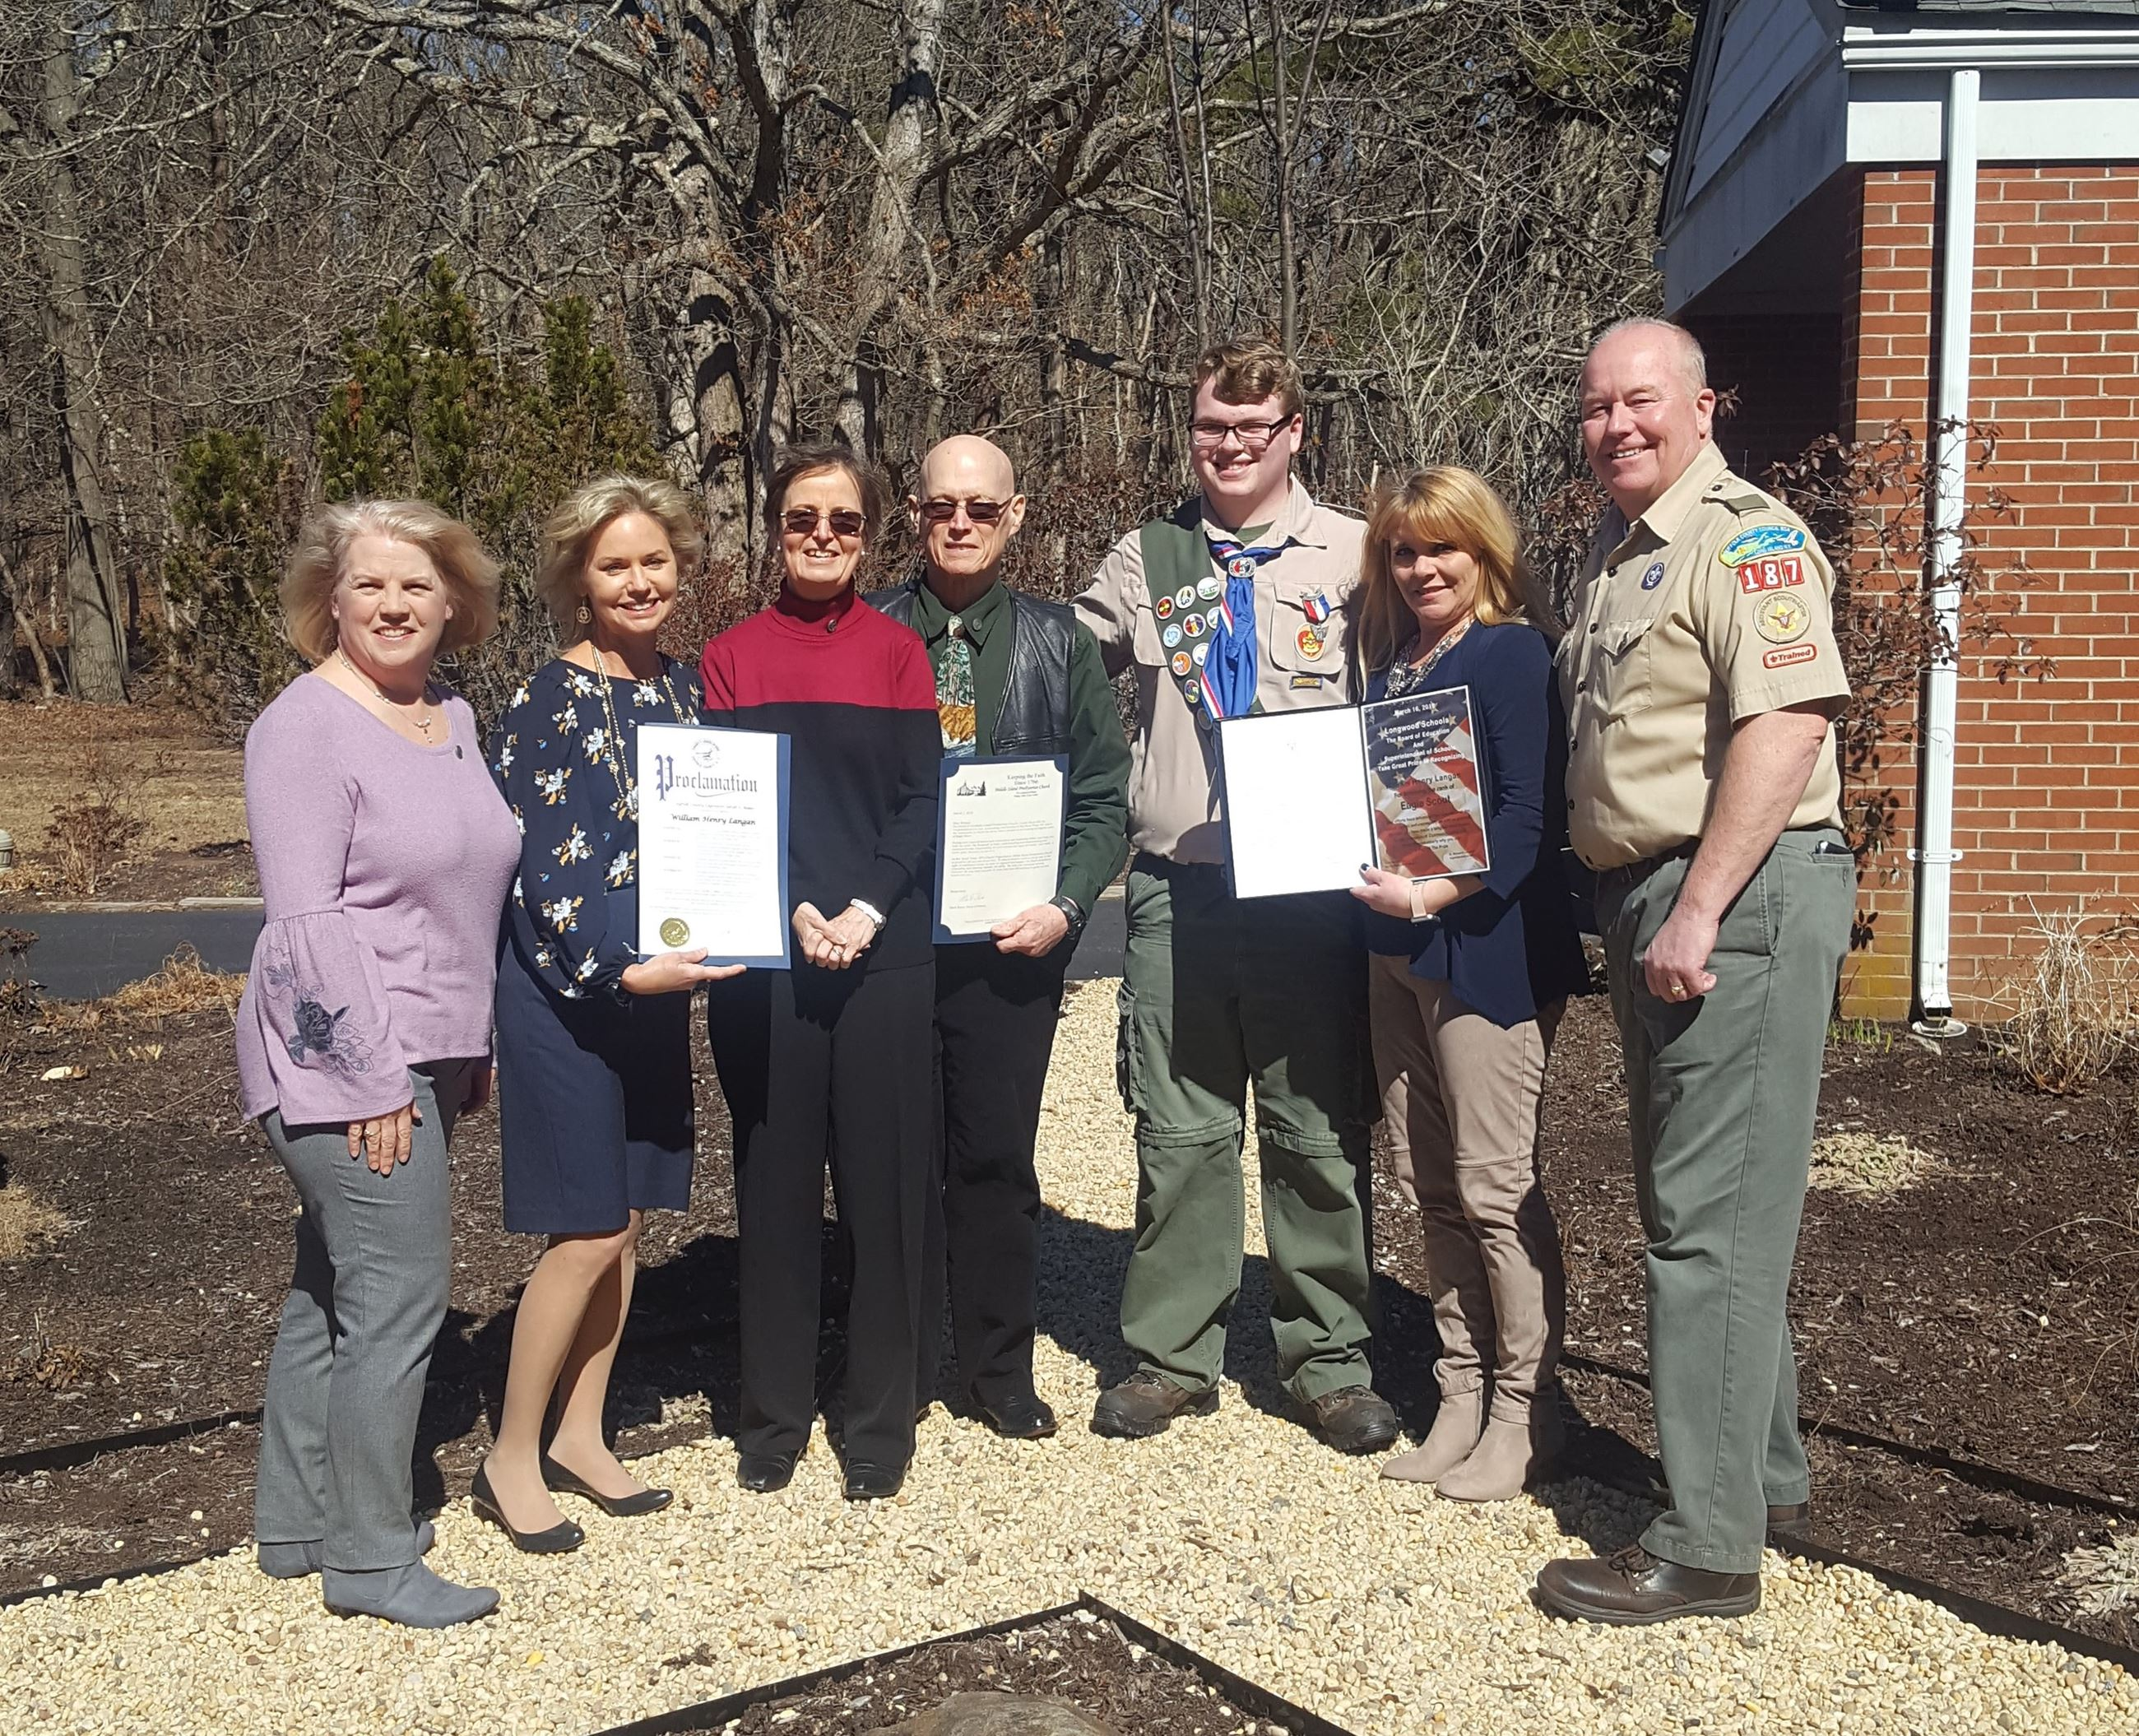 Eagle Scout William Langan